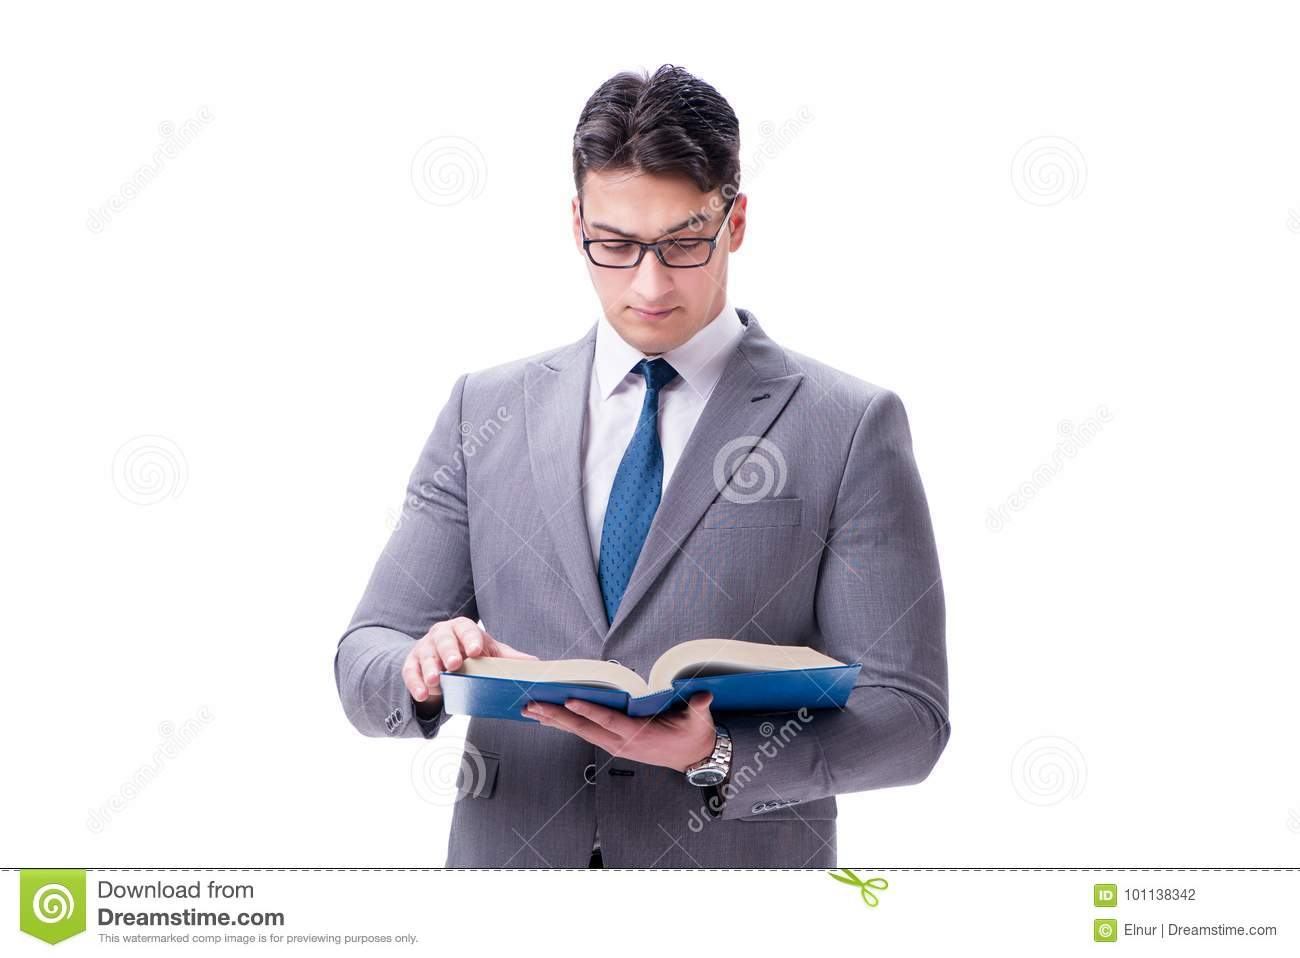 The Businessman Student Reading A Book Isolated On White